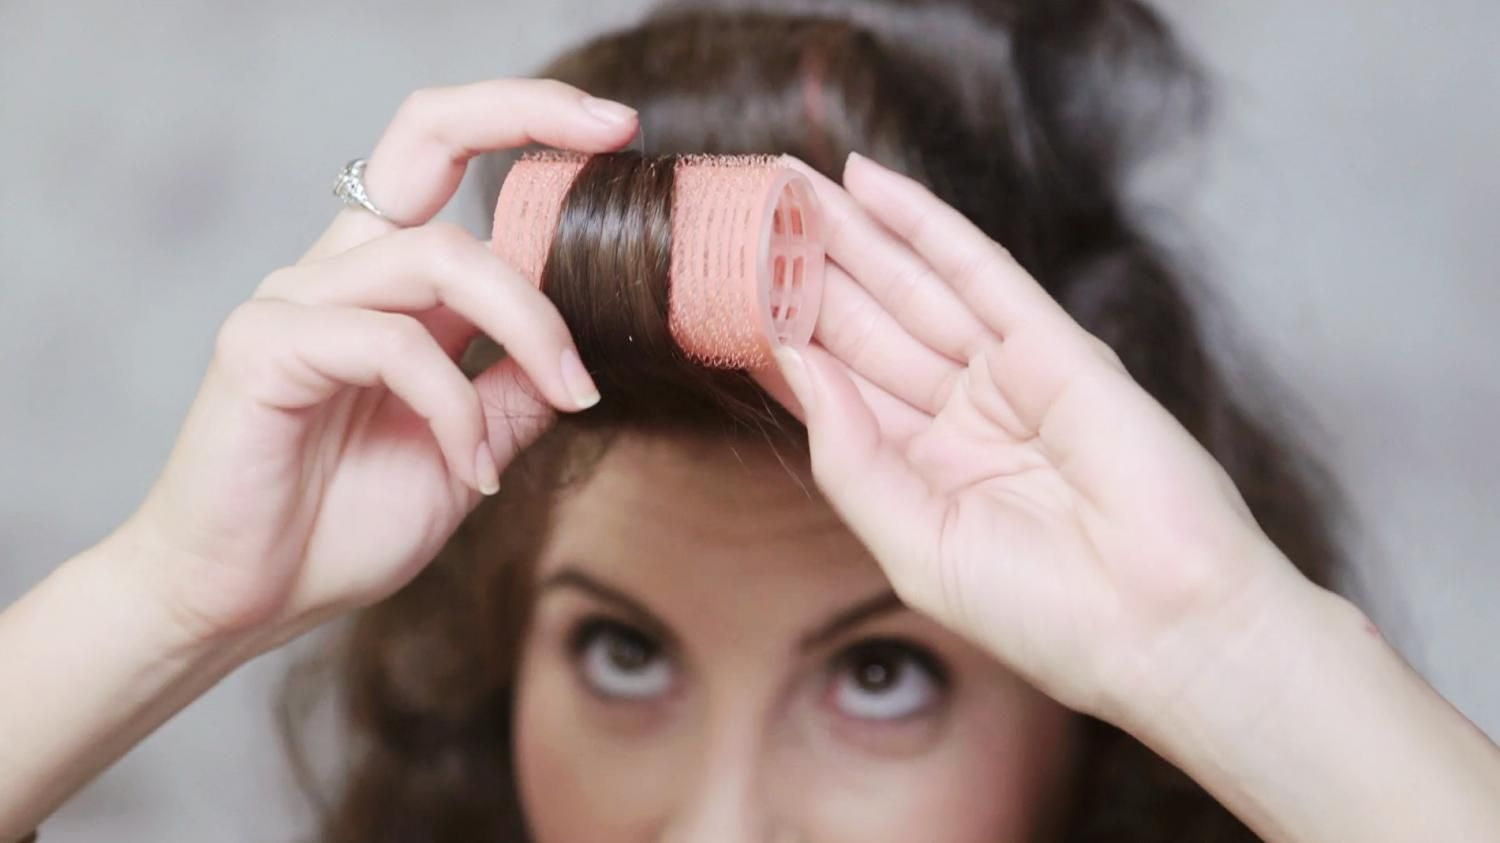 Tresemme Style Studio Rollers Tips How To Video Diy Hairstyles Hair Styles Tresemme